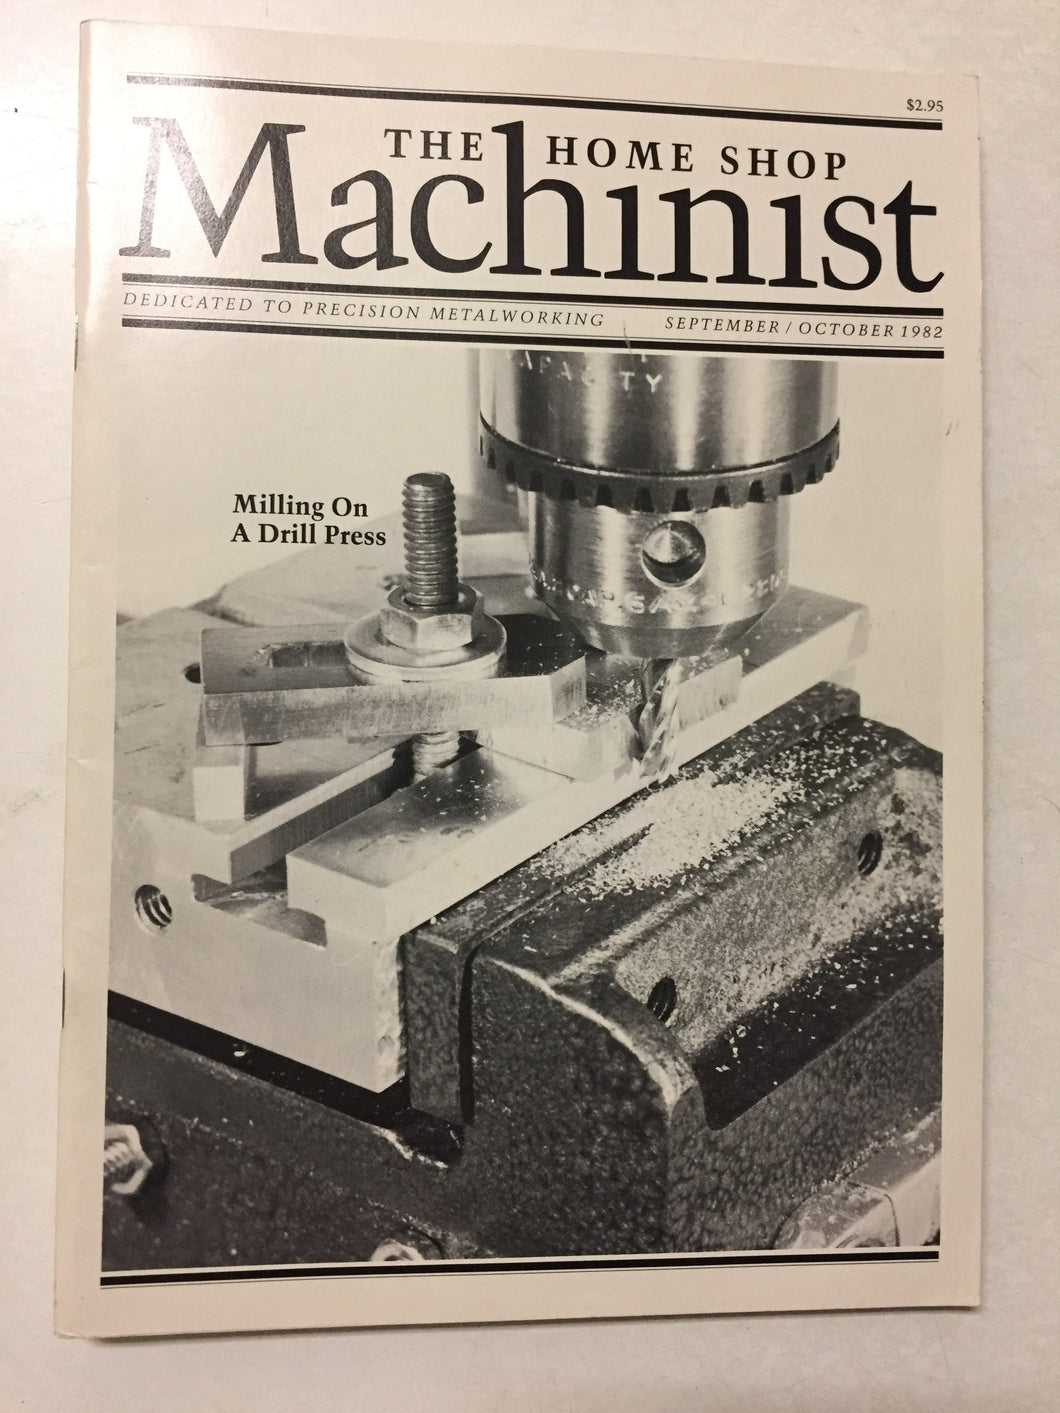 The Home Shop Machinist Sept/Oct 1982 - Slickcatbooks